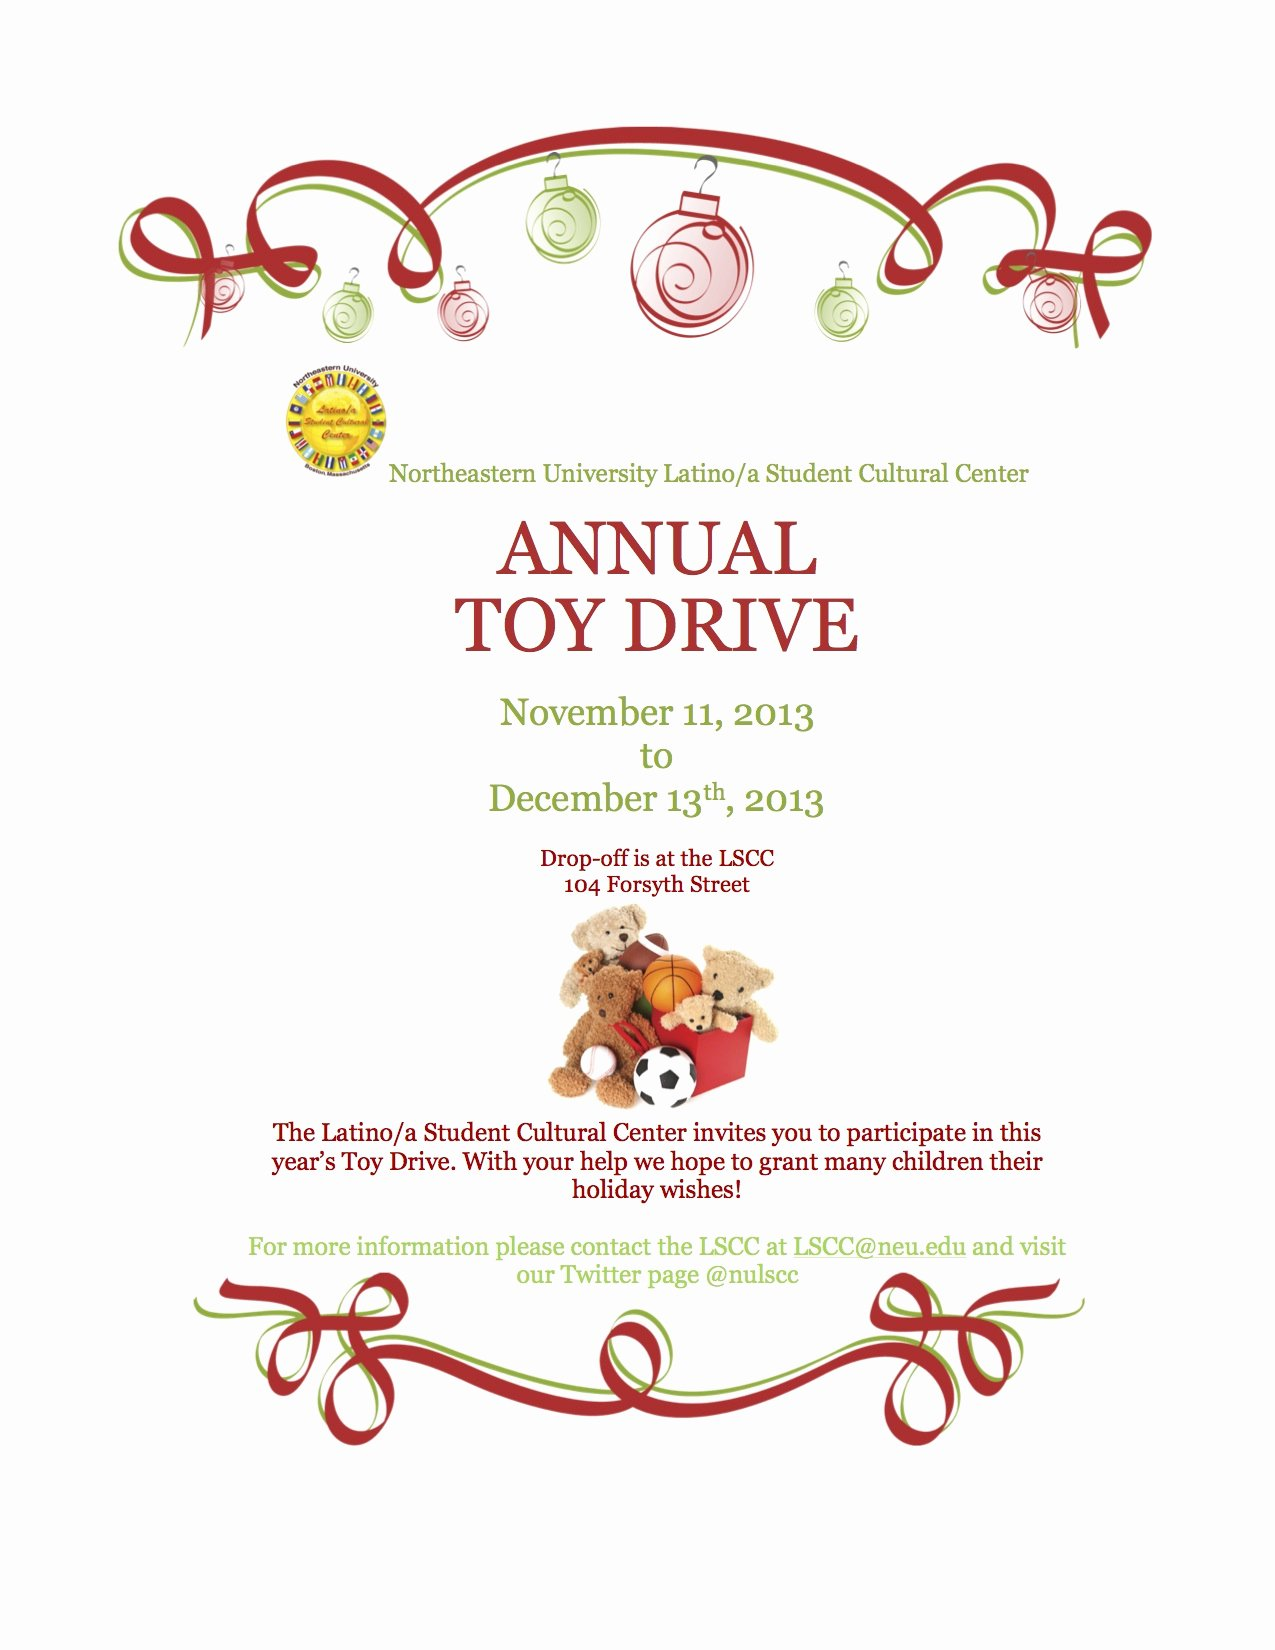 Toy Drive Flyer Template Awesome Lscc toy Drive